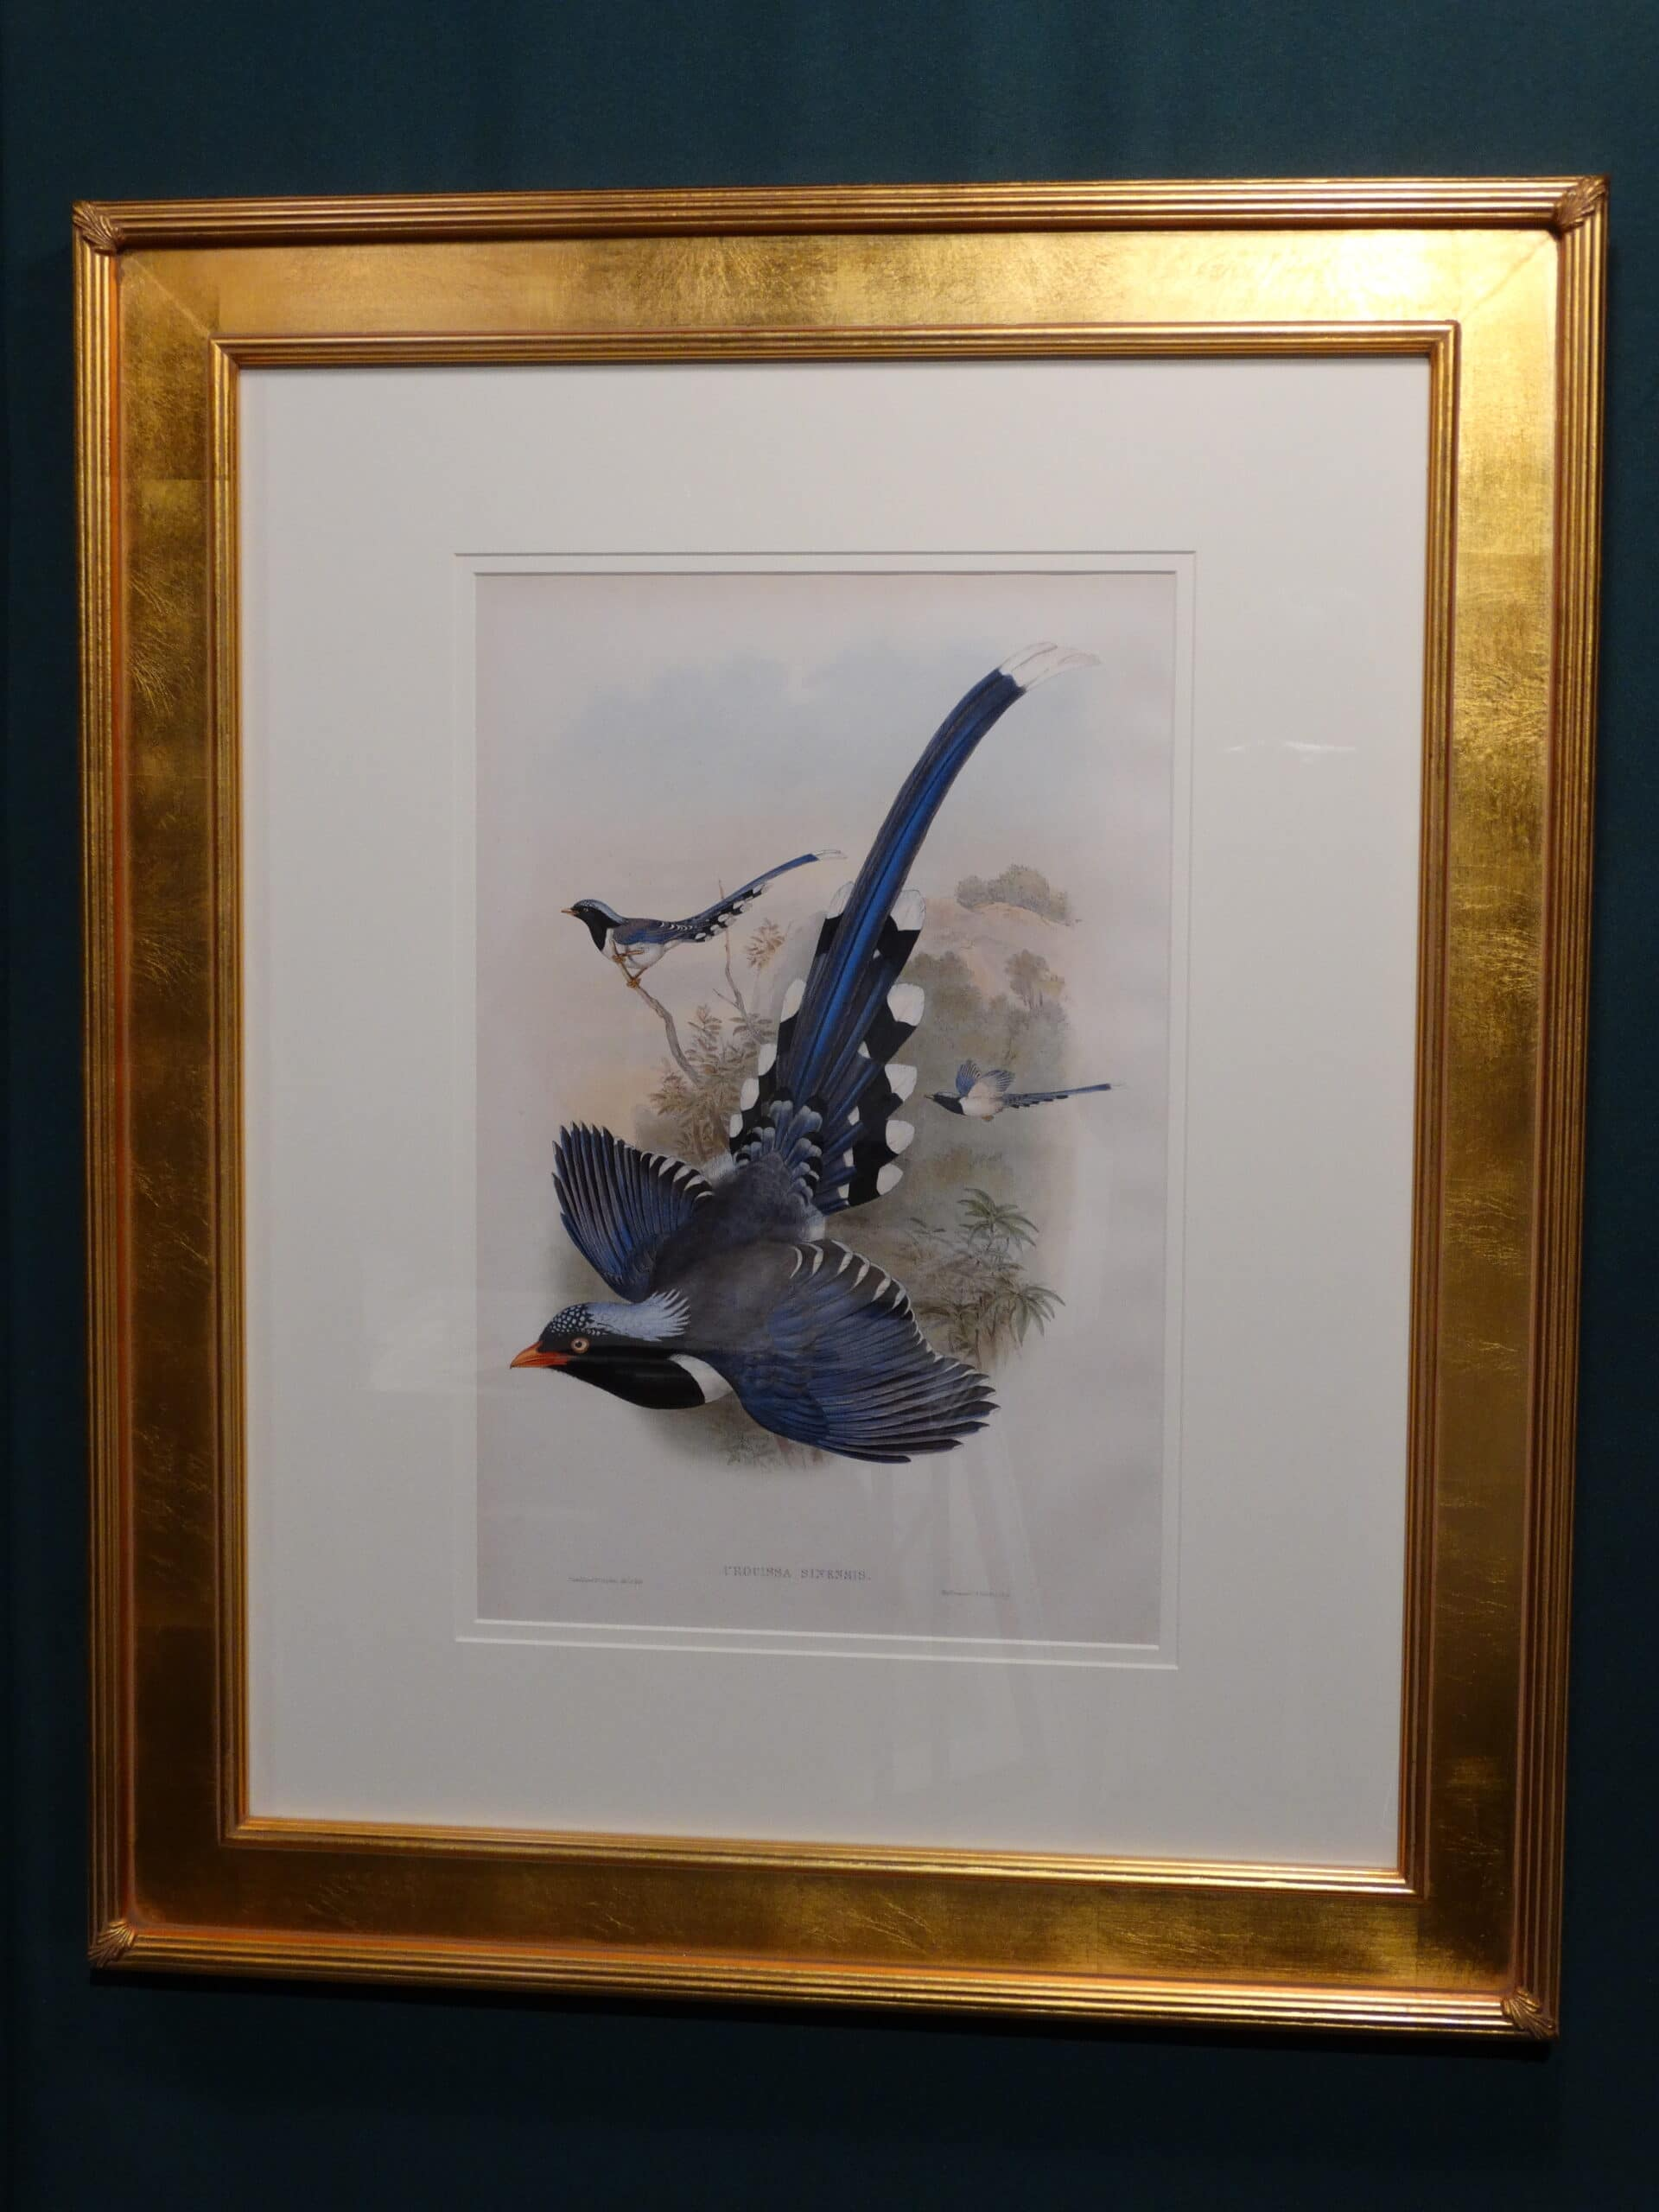 Set of three John Gould song birds. Decorative blue colored birds with long tails.